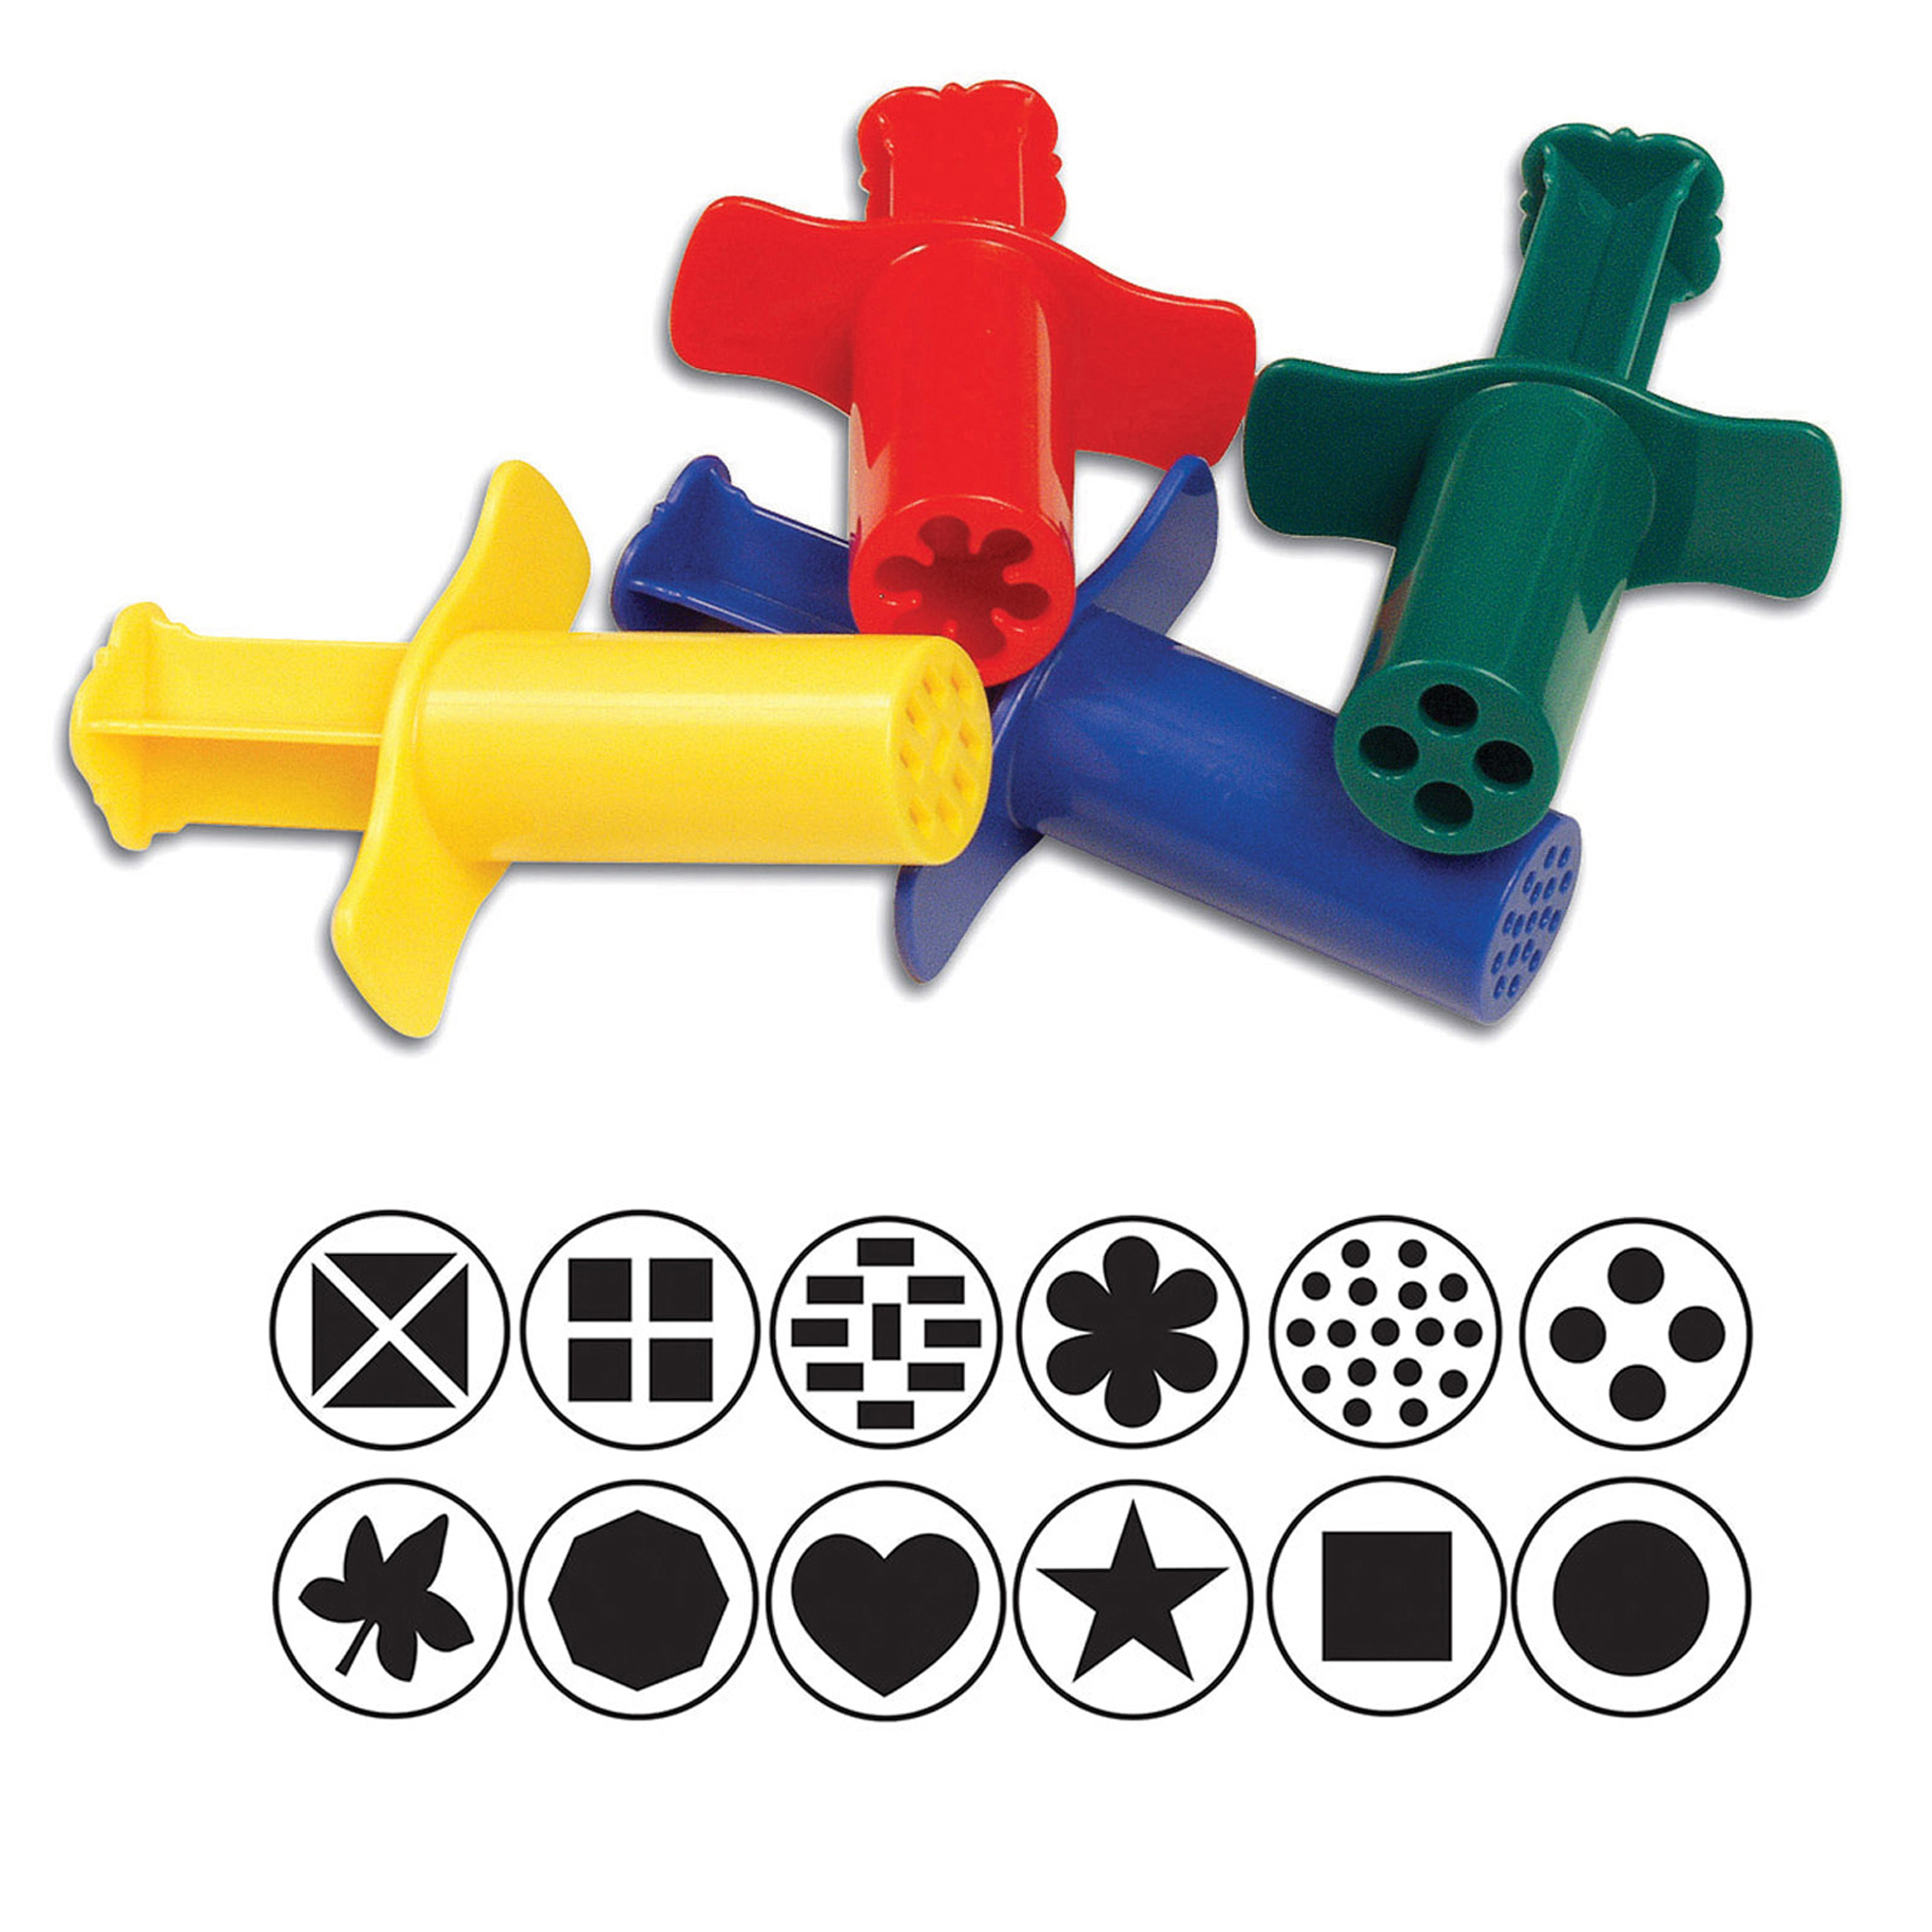 Modeling Dough Extruders, Pack of 12